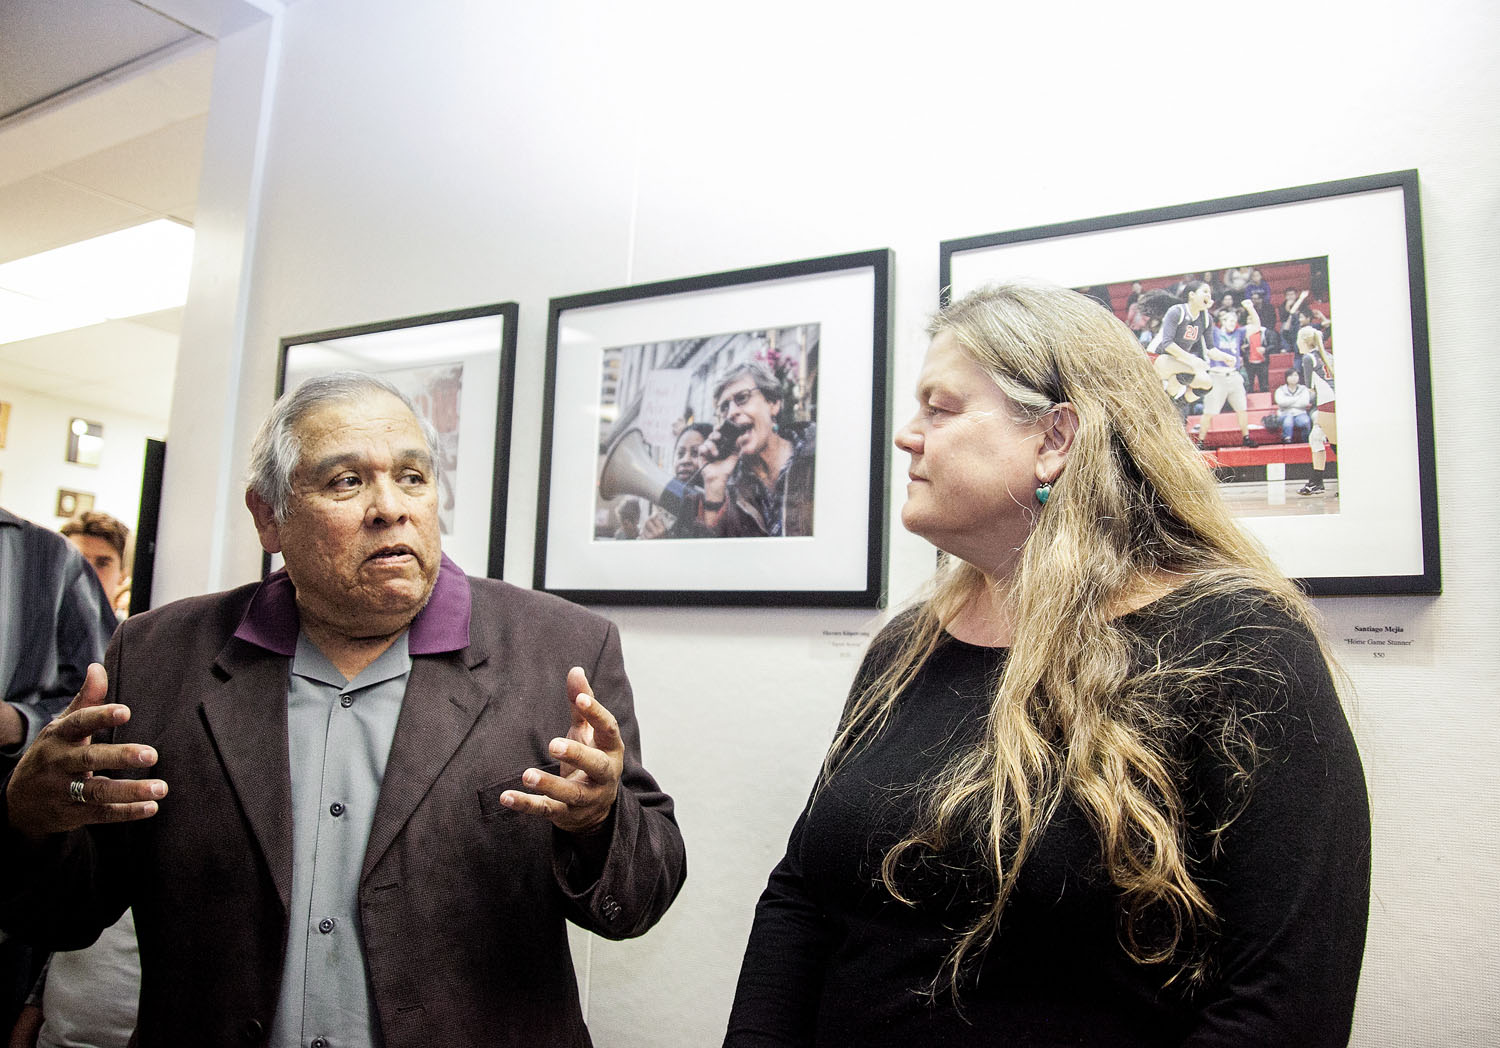 (L-R) Department of Journalism Chair Juan Gonzales and San Francisco Chronicle Director of Photography Judy Walgren, give speech to gallery attendees during photo exhibition's opening reception in the Front Page Gallery, Ocean Campus on Thursday, April 23. (Photo by Ekevara Kitpowsong)